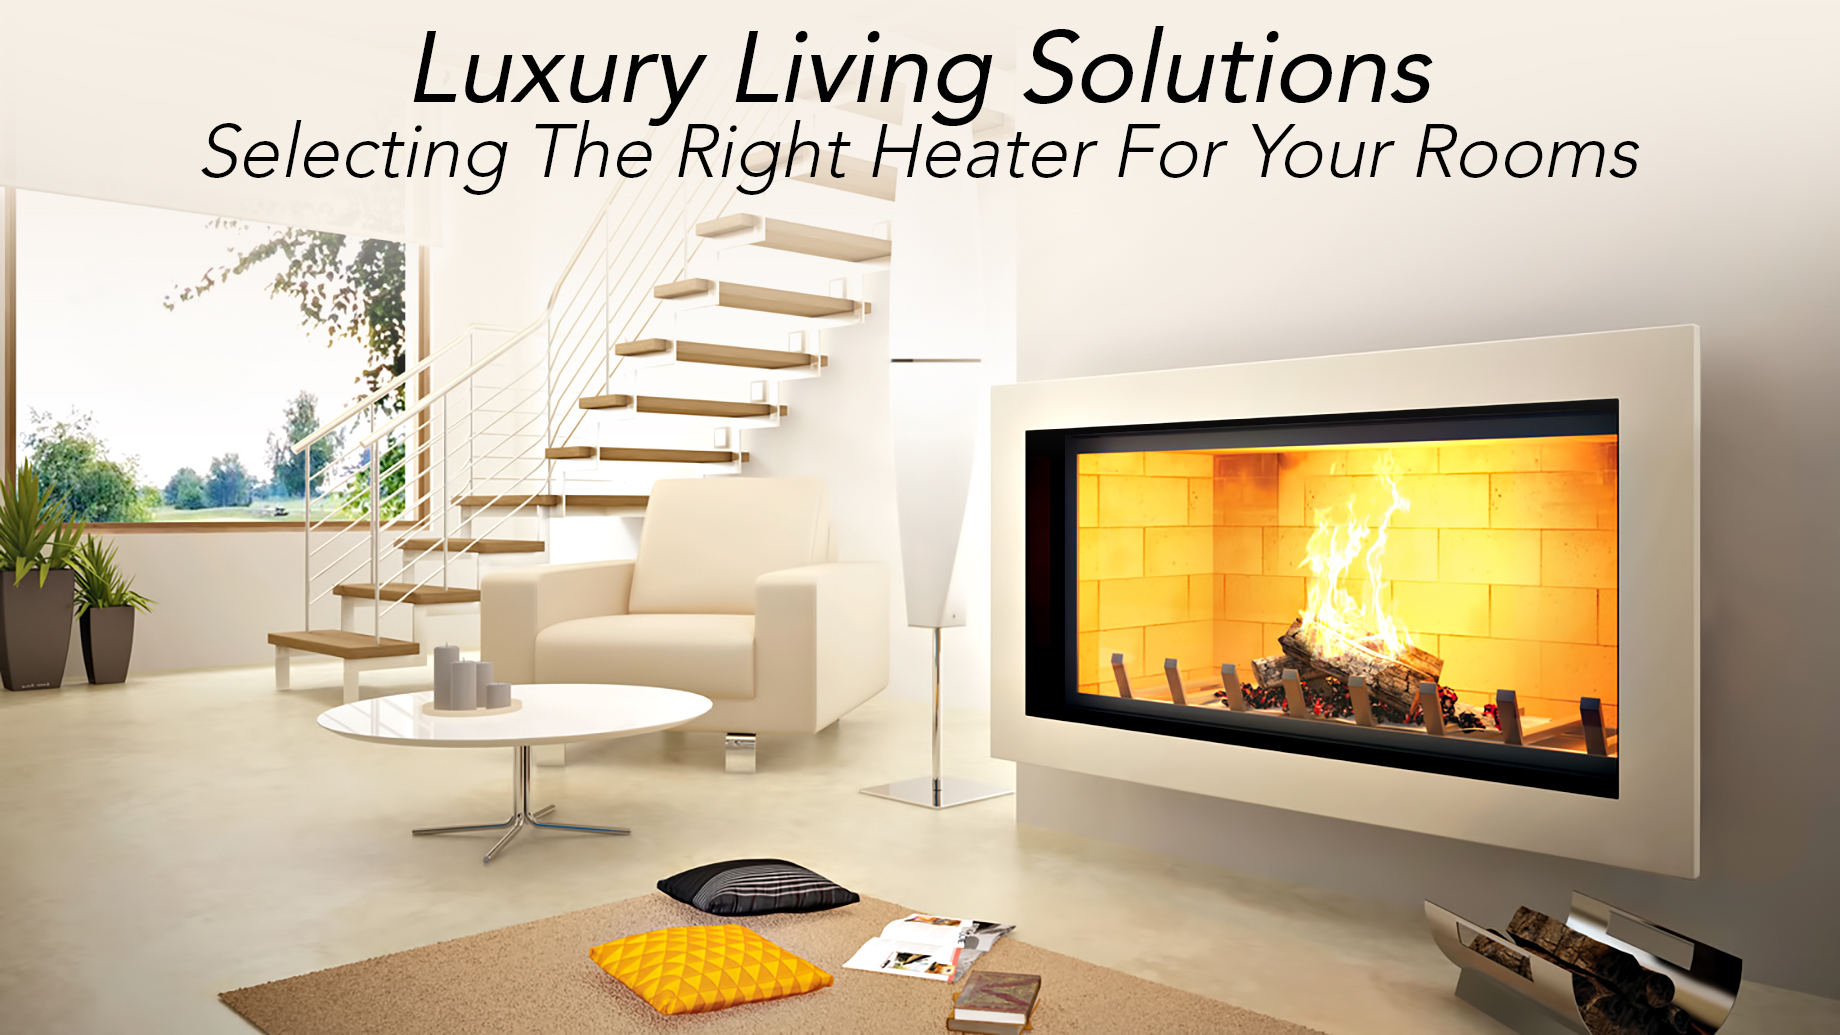 Luxury Living Solutions - Selecting The Right Heater For Your Rooms